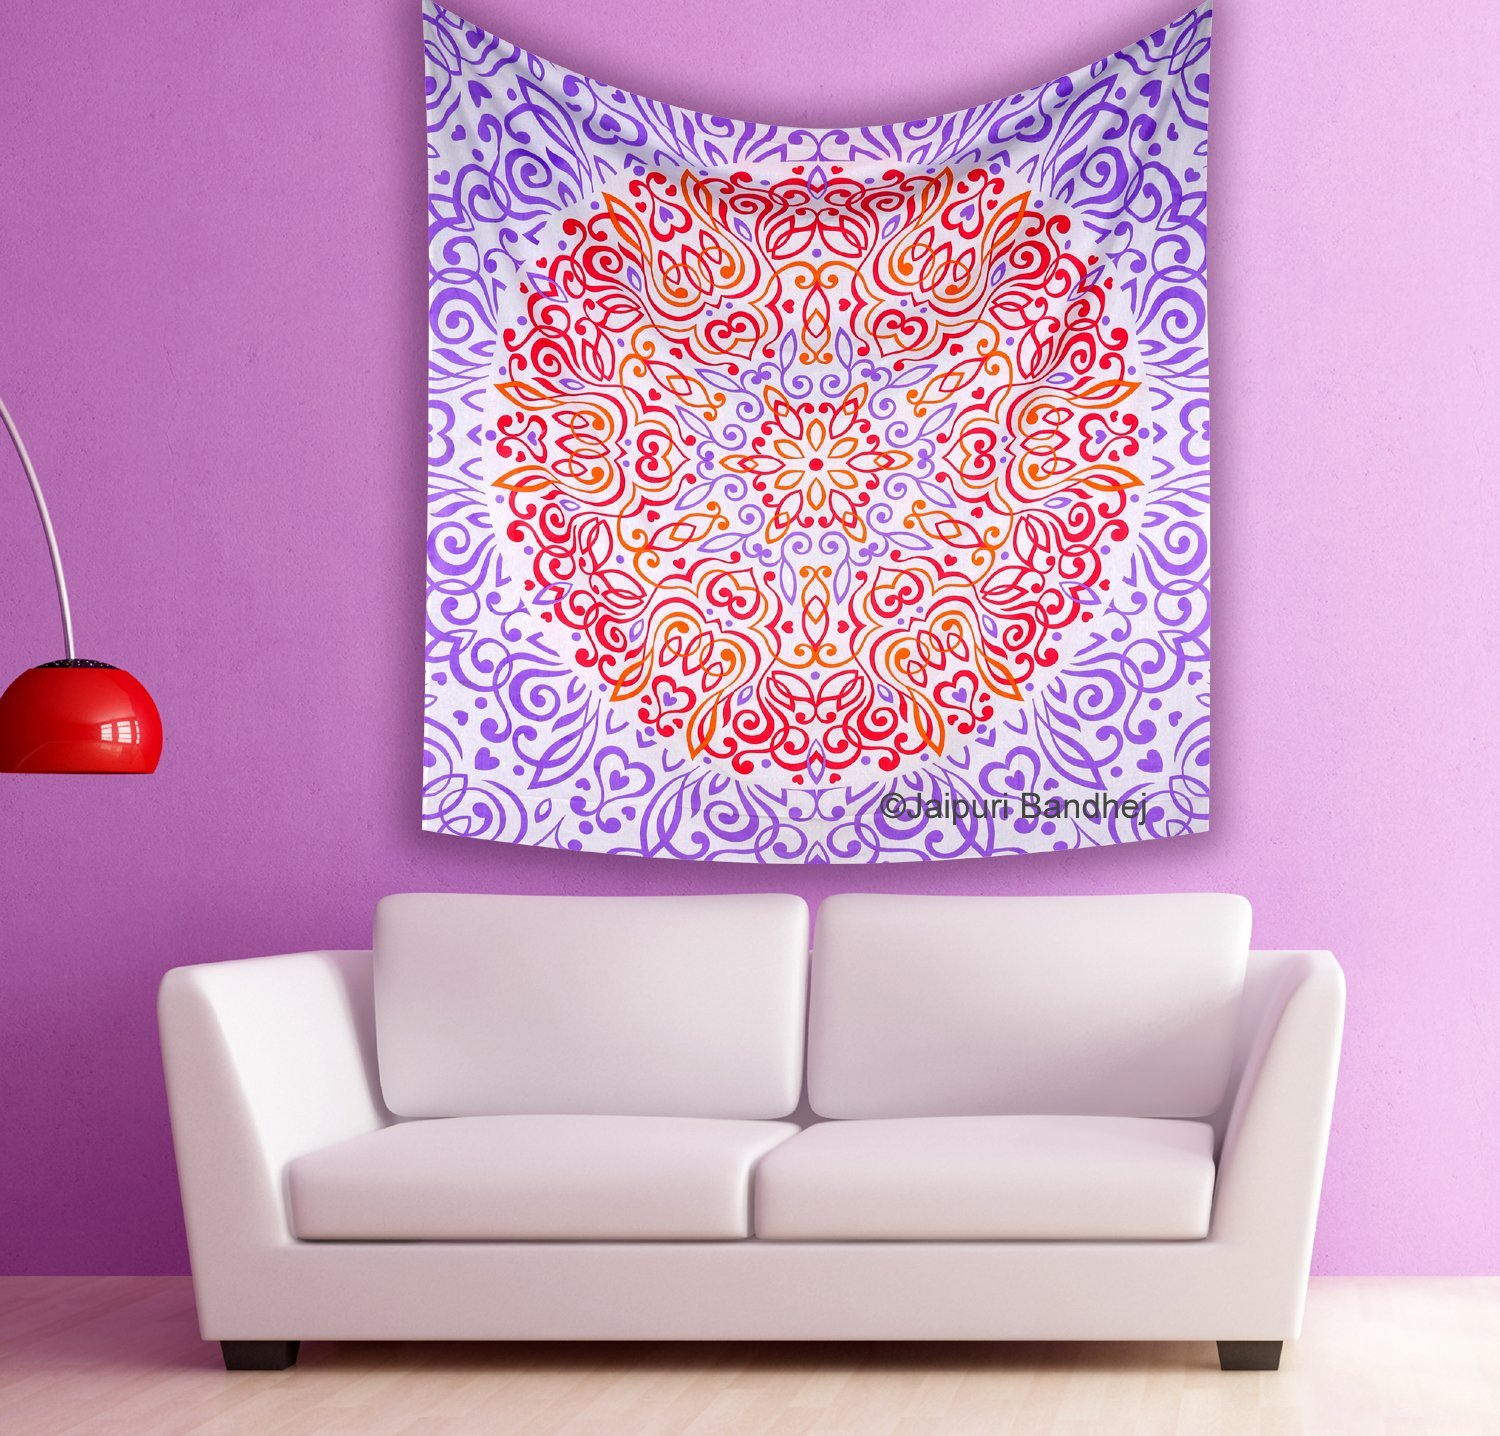 Hippie Tapestries, Bohemian Mandala Indian Tapestry Wall Hanging, Meditation Mandala Hippie Hippy Ombre Wall Hangings, Throw Cotton Bedcover , Picnic Beach Sheet